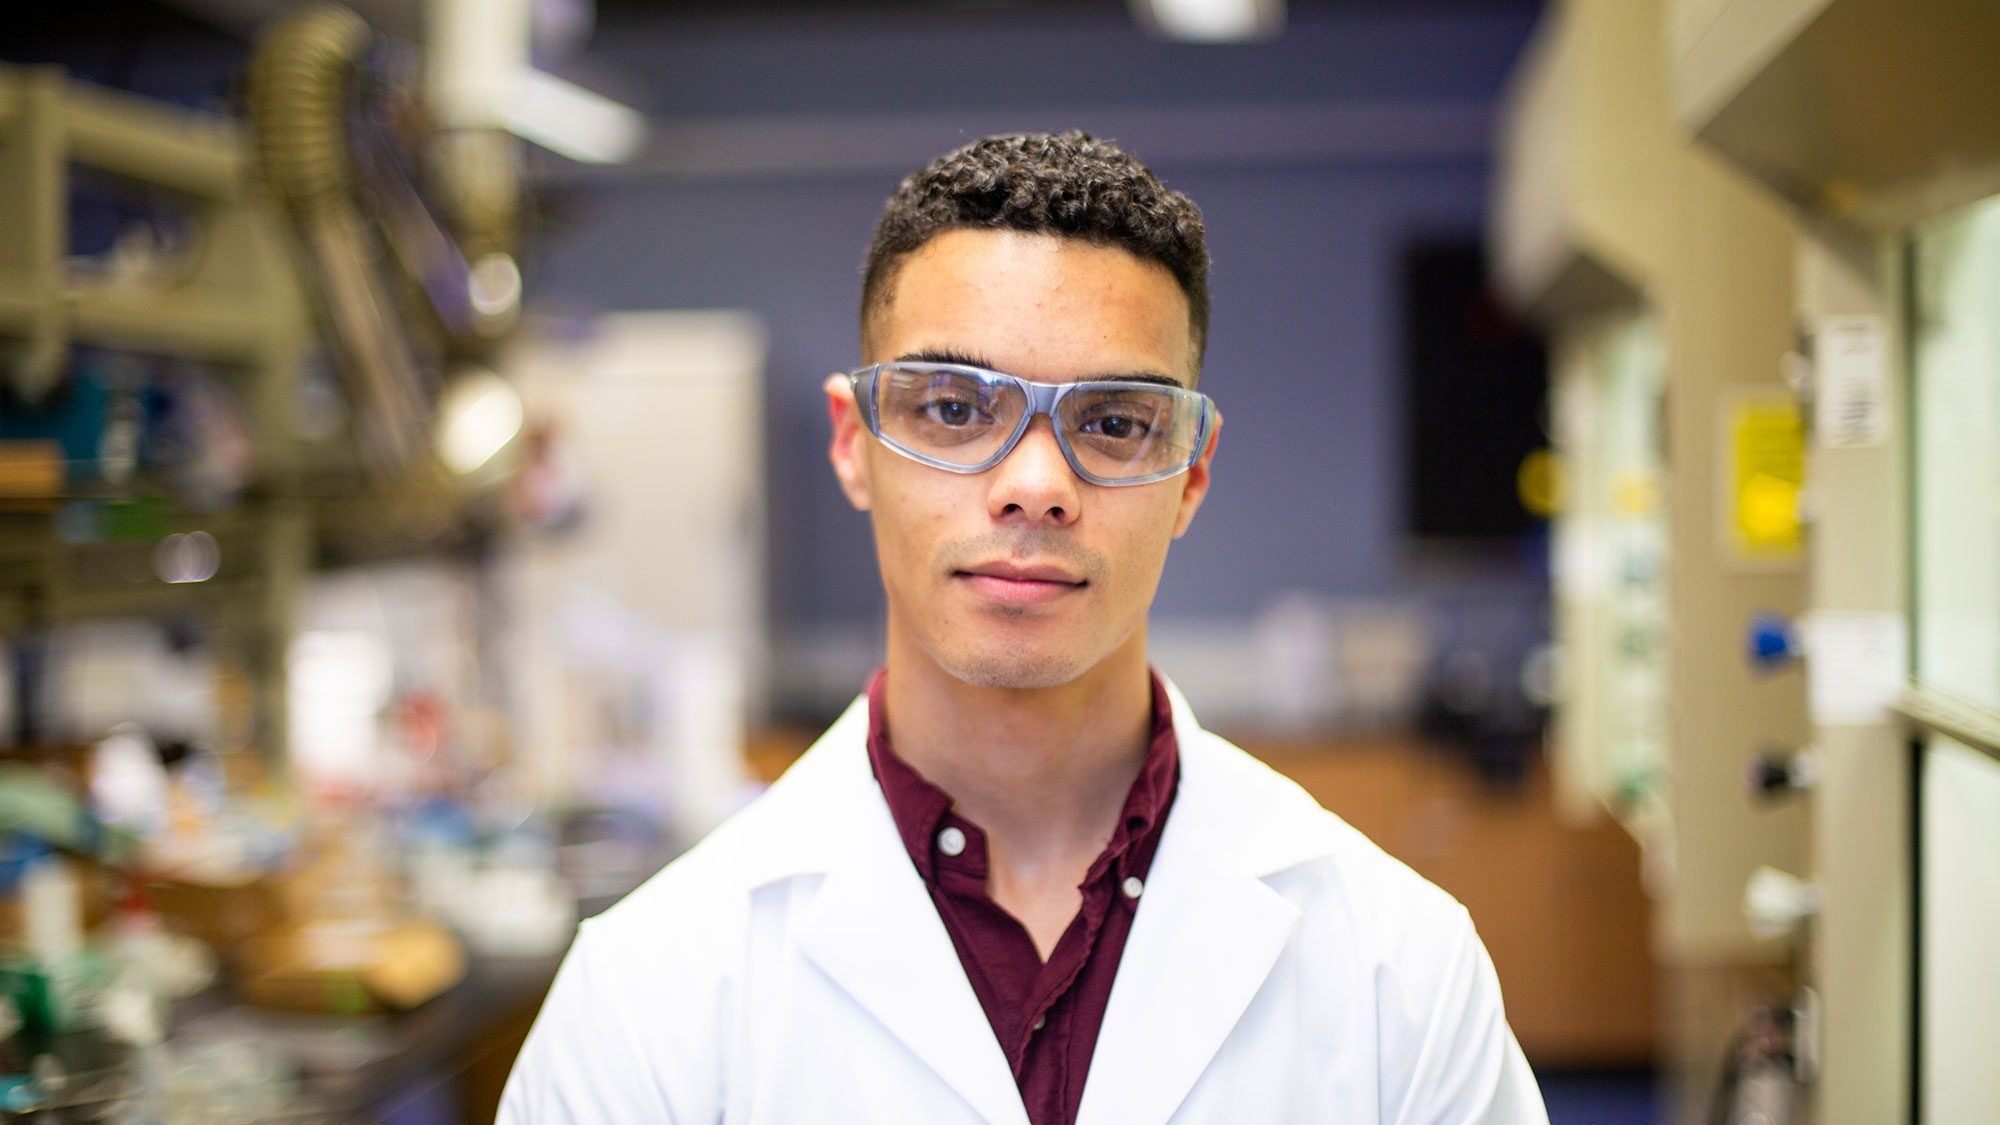 Orlando Stewart stands wearing a white lab coat and goggles in a laboratory.